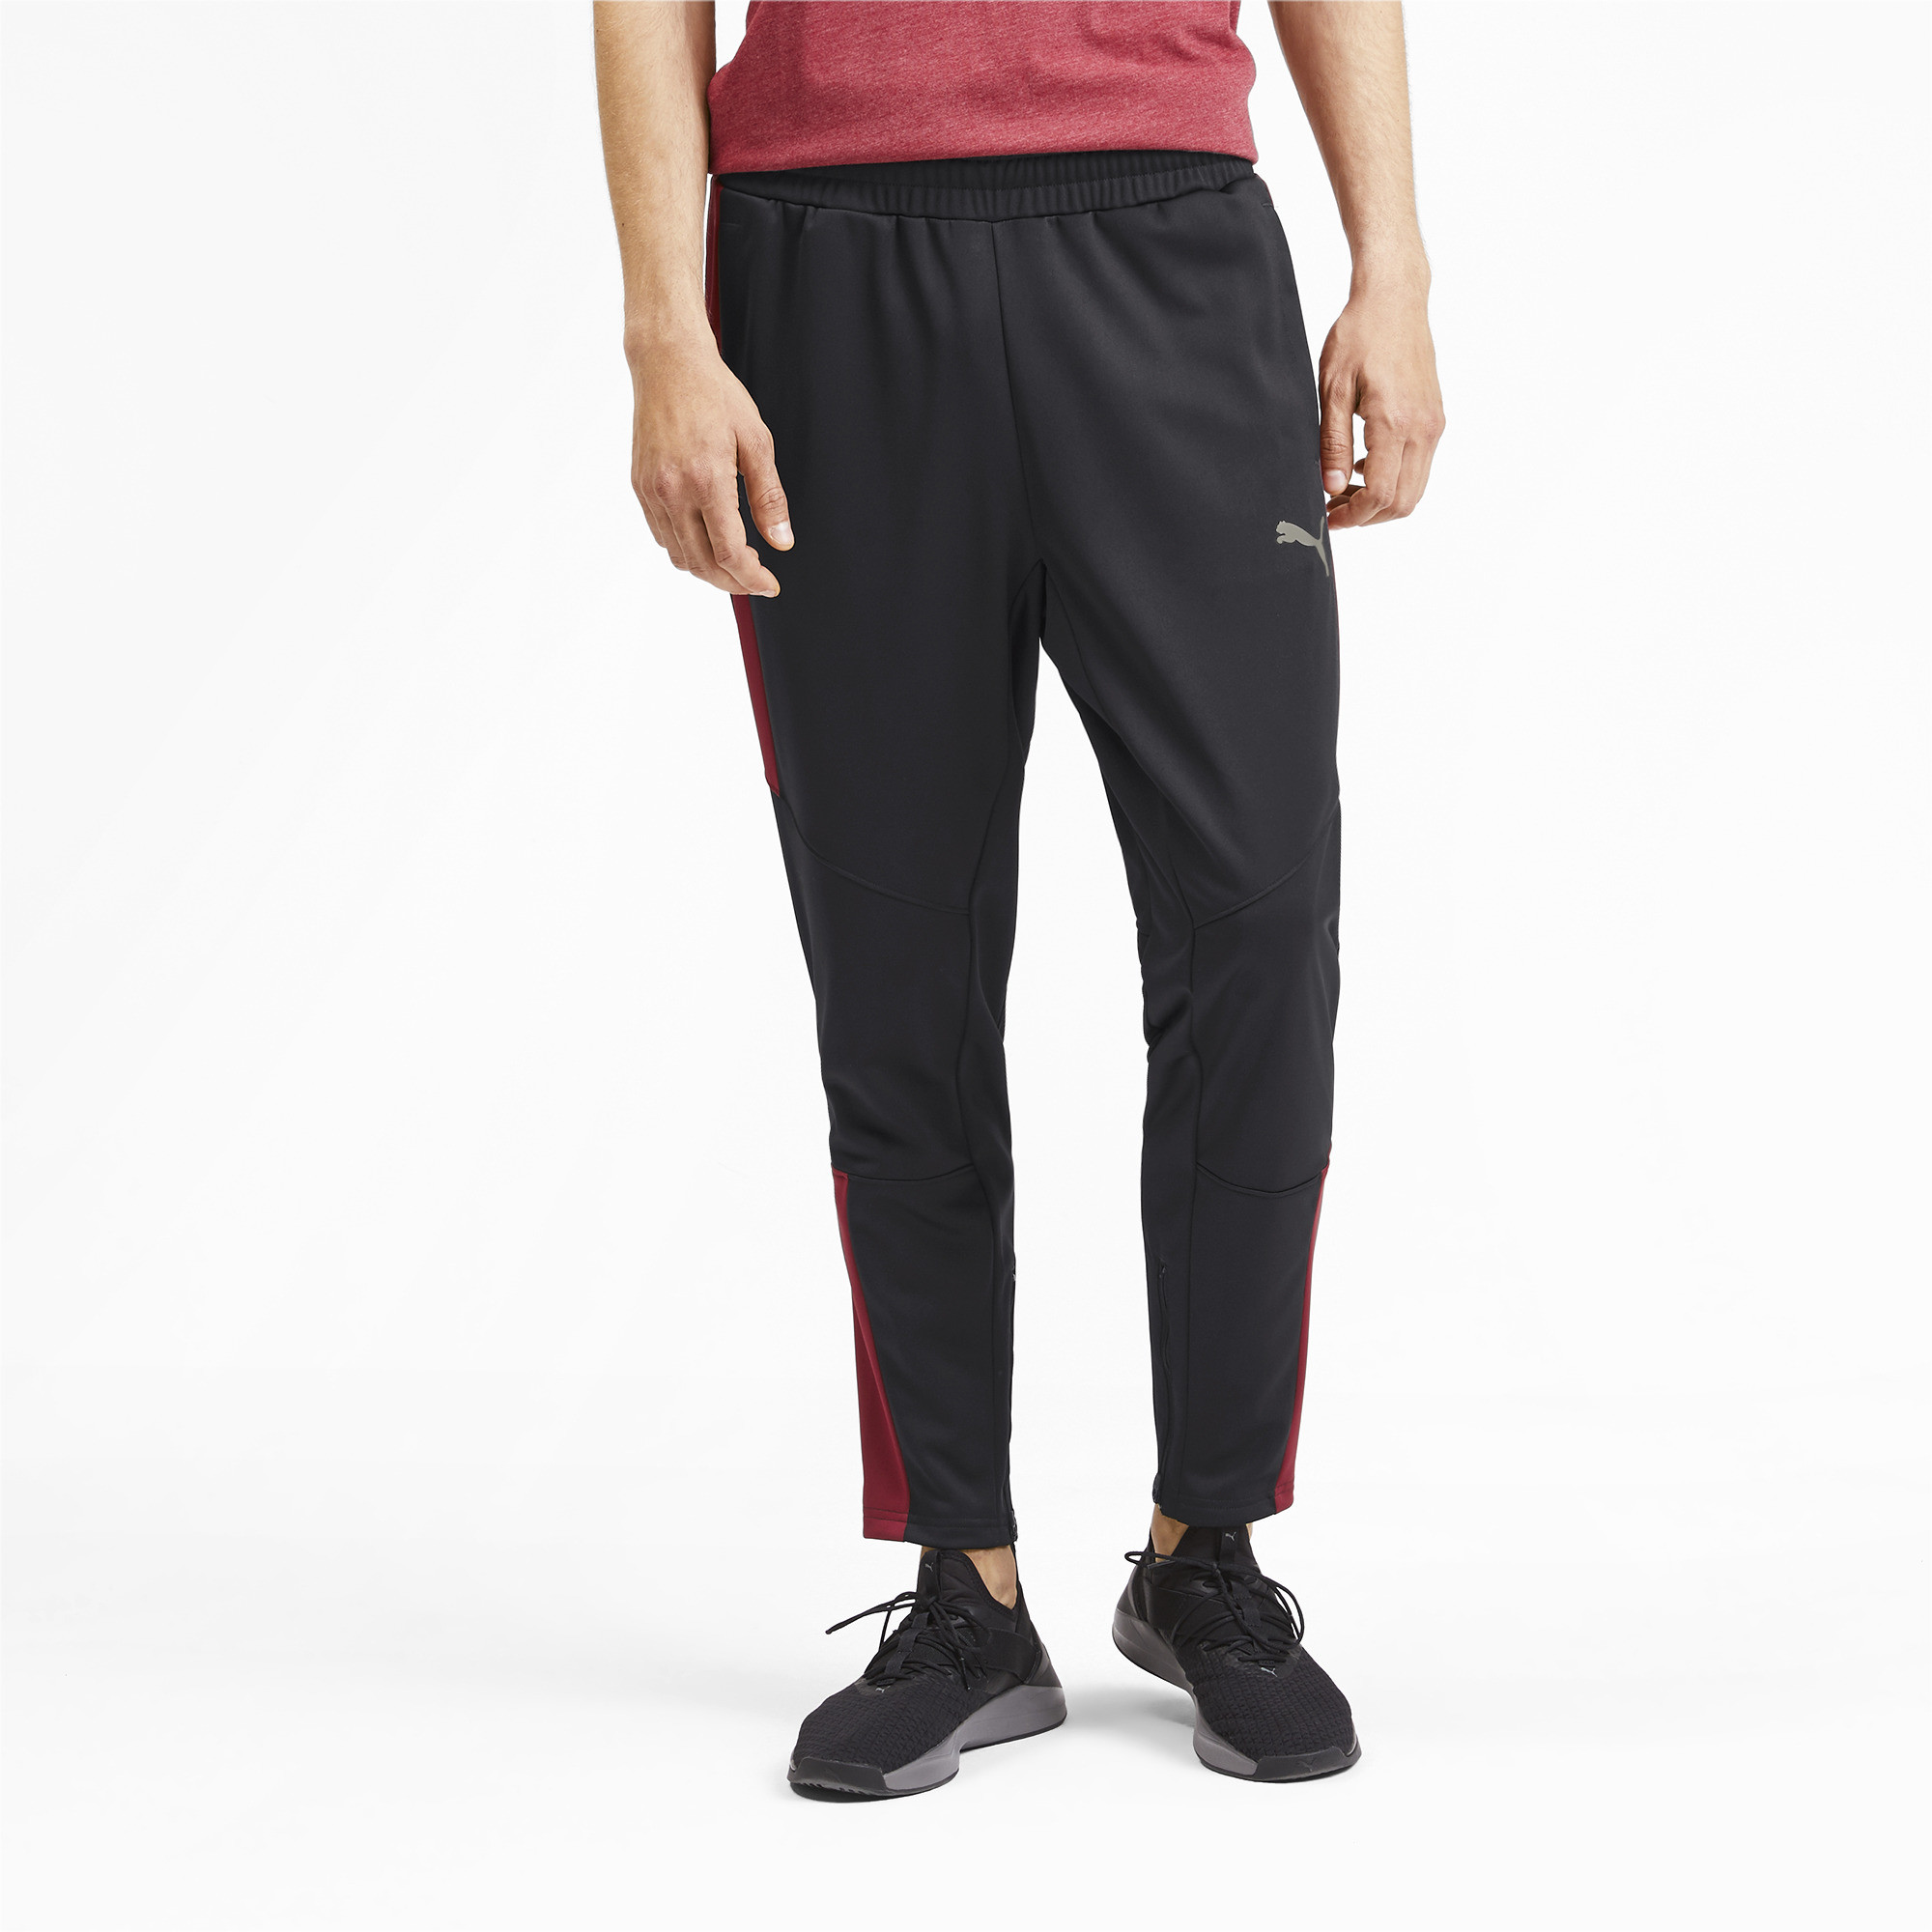 PUMA-Men-039-s-Blaster-Pants thumbnail 8